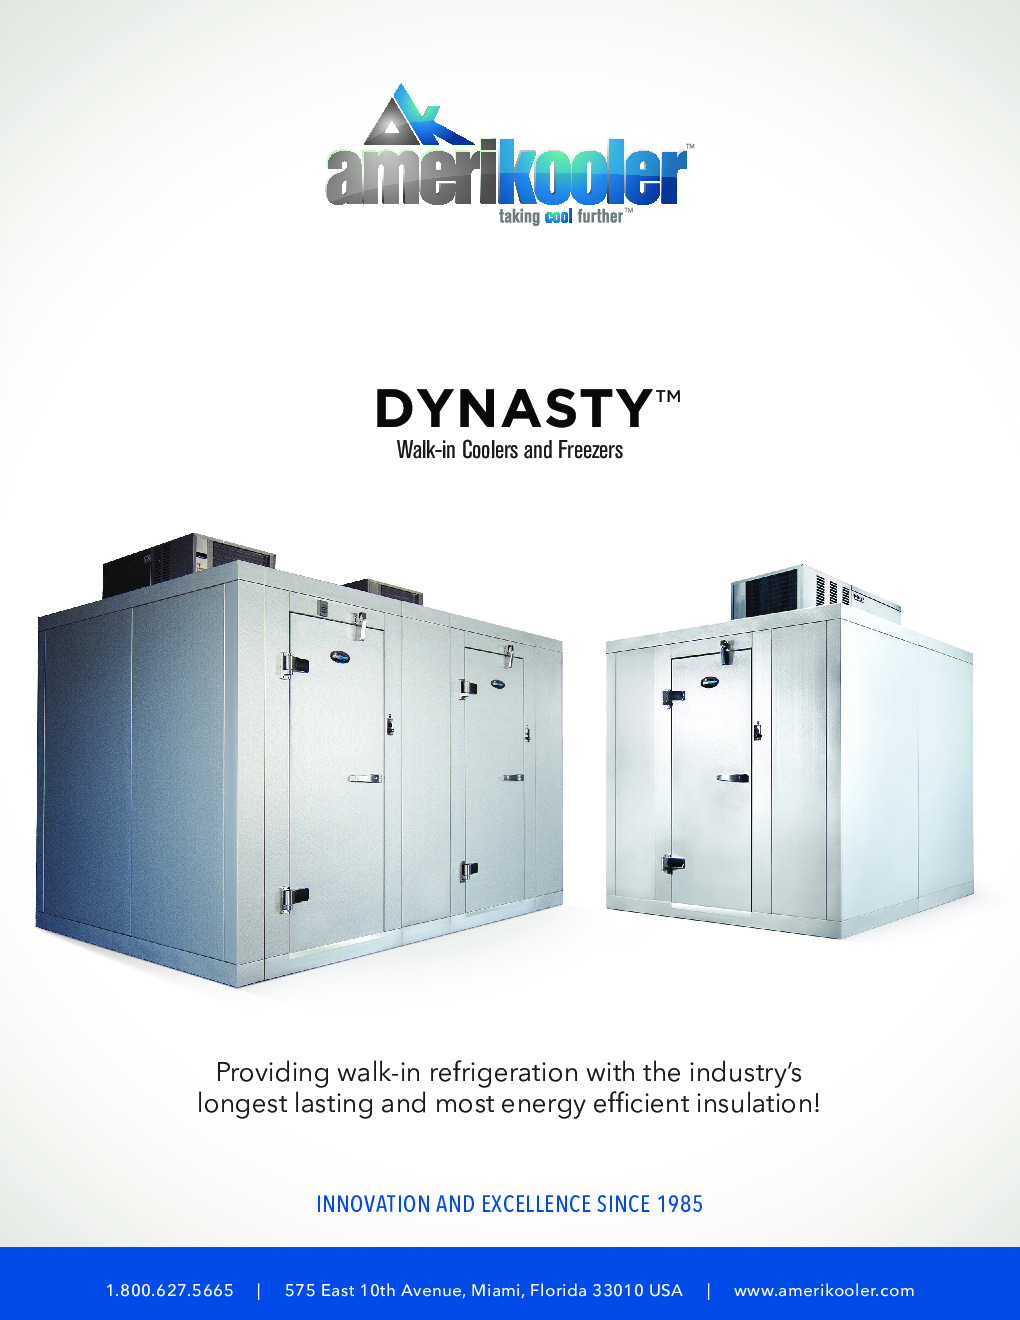 AmeriKooler DW061477N-7/7 Indoor 6' X 14' Walk-In, 7' L Cooler without Floor and 7' L Freezer, Box Only